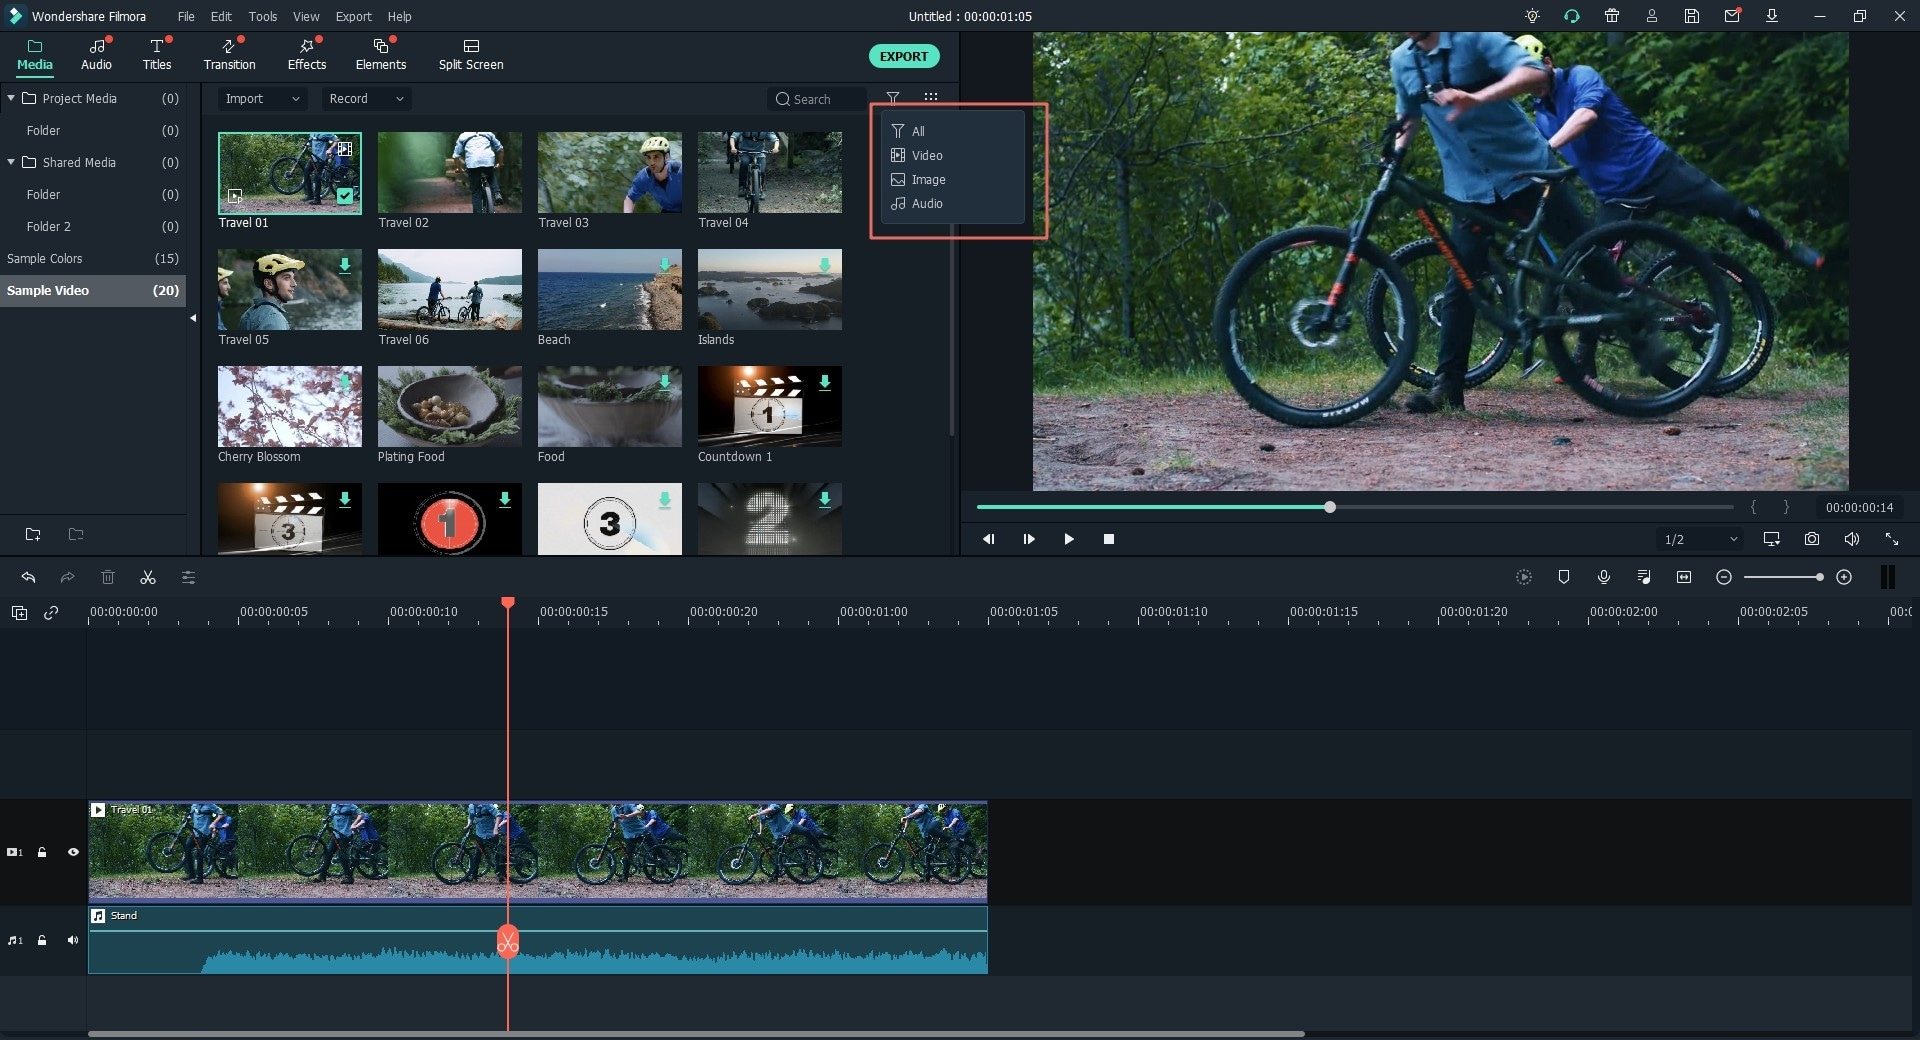 Split Screen Video Editor - How to Make A Split Screen Video on Mac/Windows